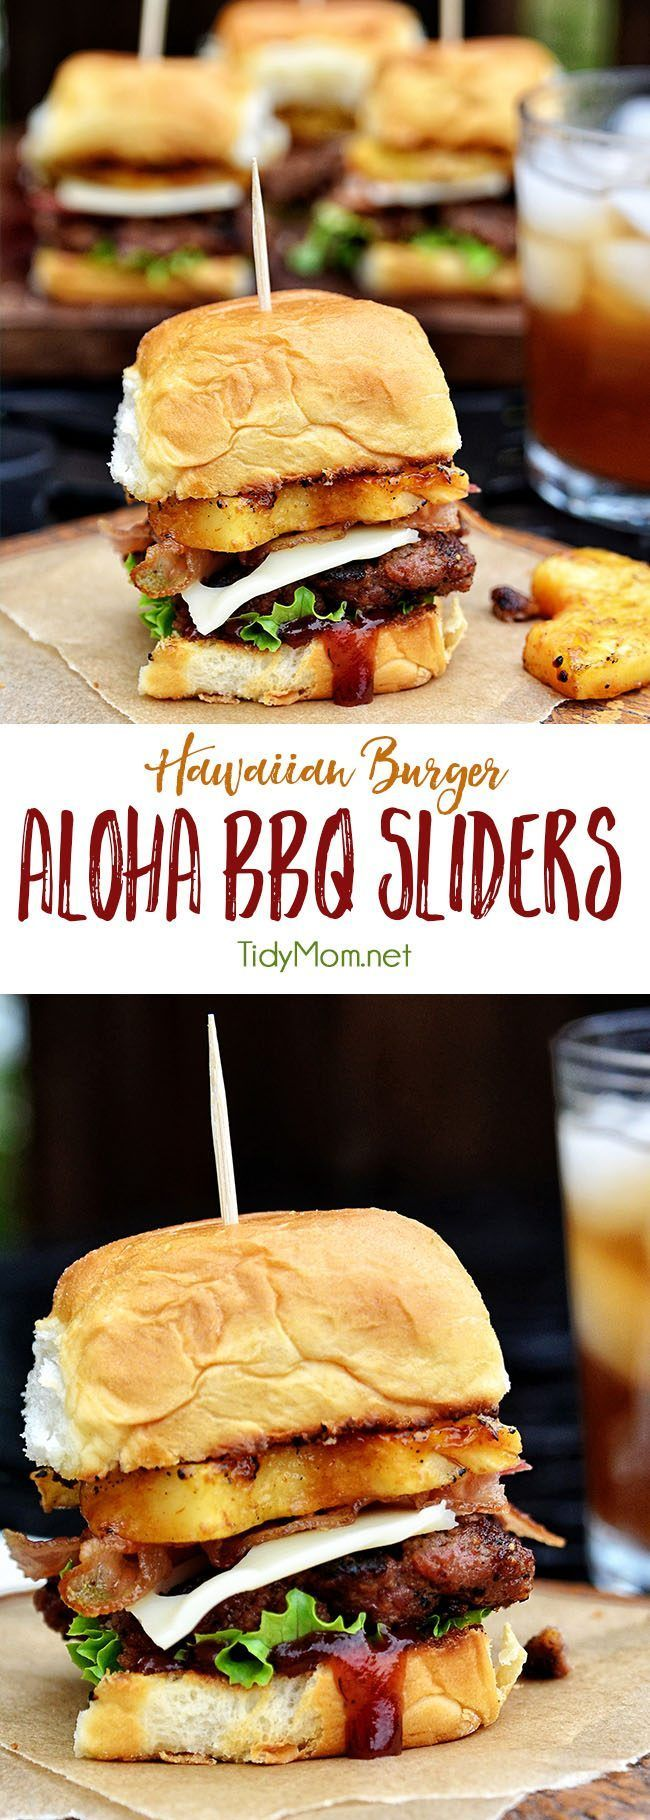 Fire up the grill for this Hawaiian burger recipe. Aloha BBQ Sliders are flavored with BBQ sauce, served on sweet rolls with